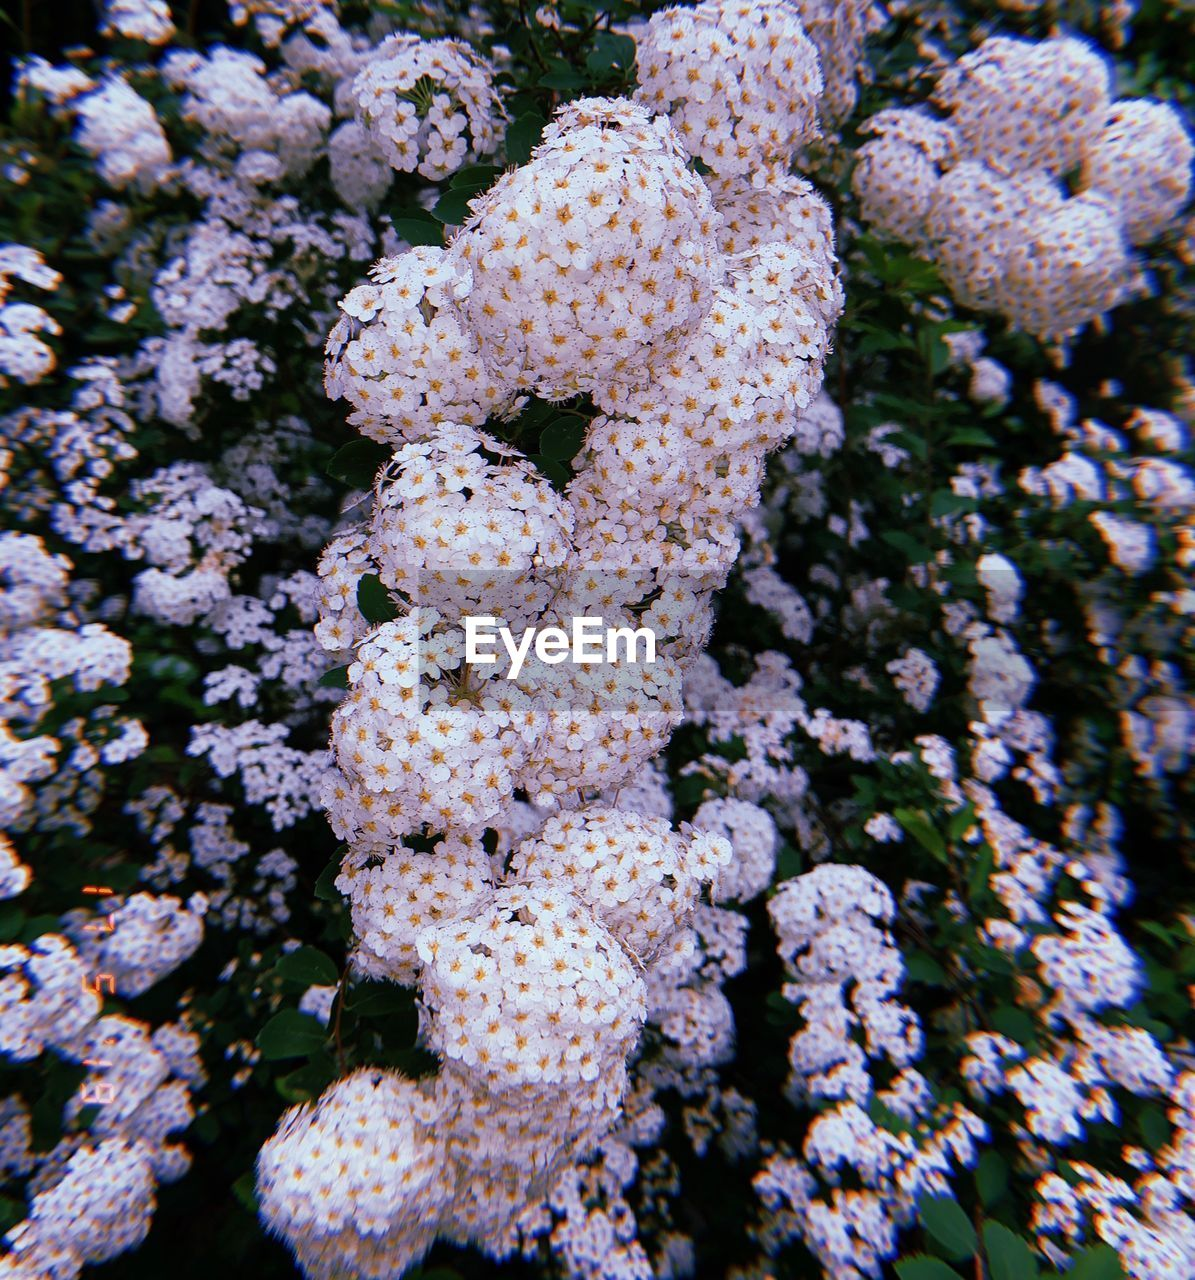 growth, no people, close-up, beauty in nature, plant, sea life, nature, animal wildlife, undersea, fragility, vulnerability, animals in the wild, coral, day, marine, underwater, sea, animal, high angle view, flowering plant, flower head, lichen